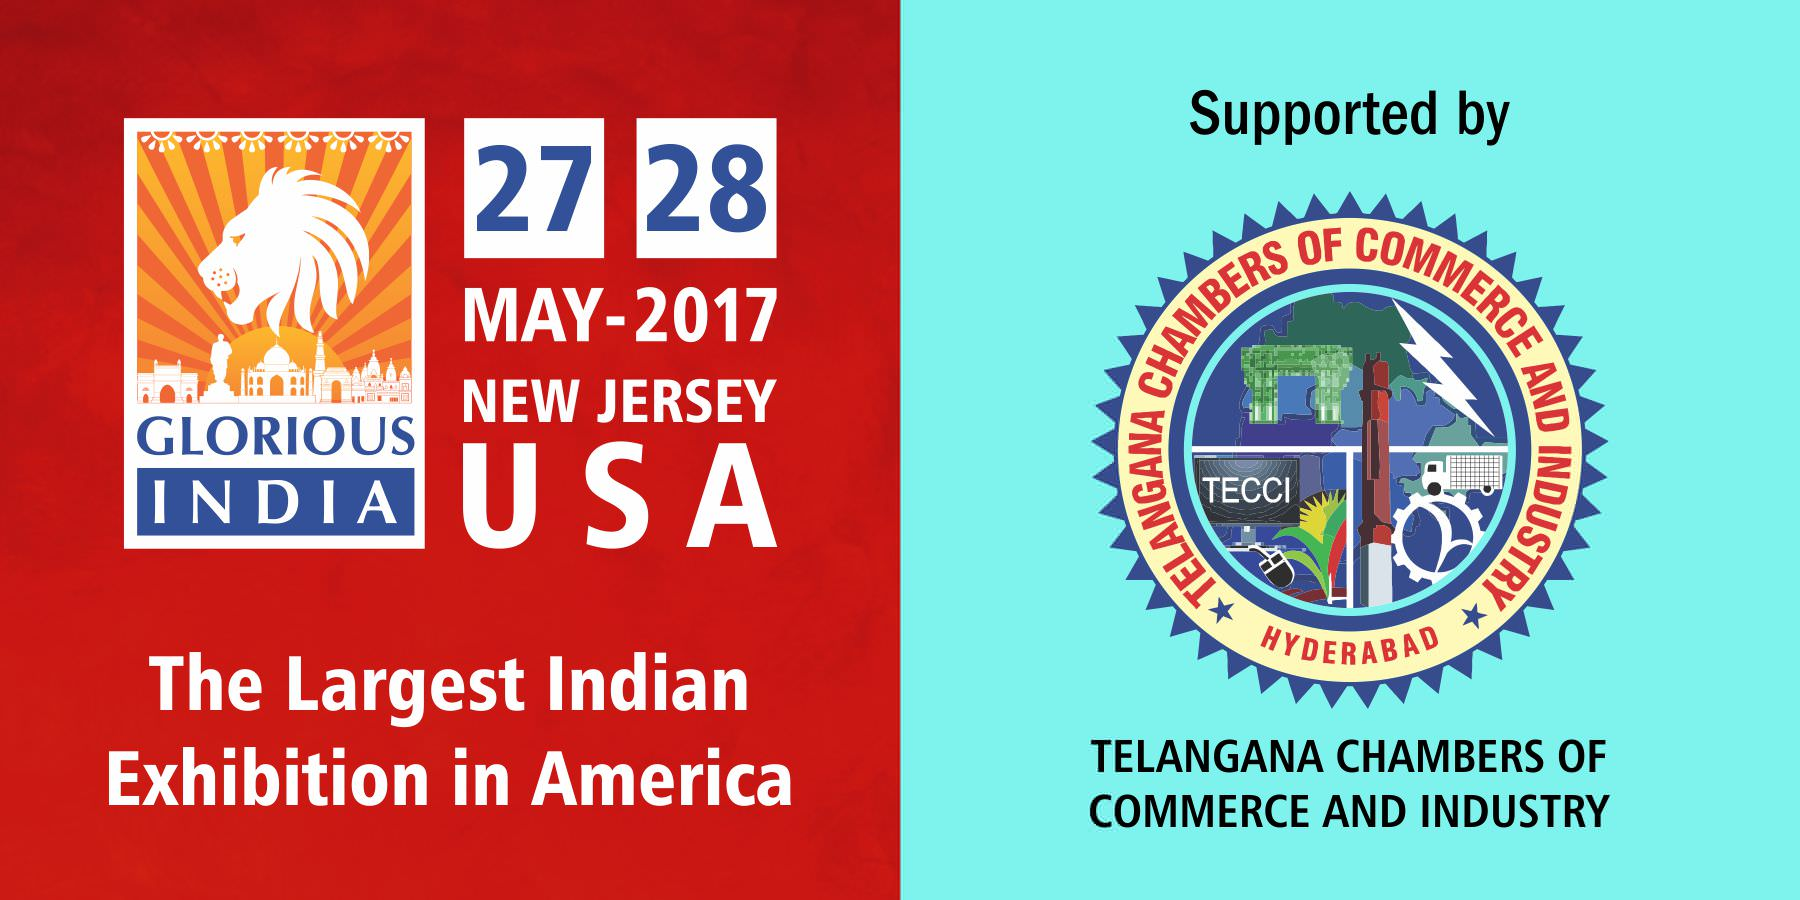 Glorious India Expo - Telangana Chamber Of Commerce and Industry